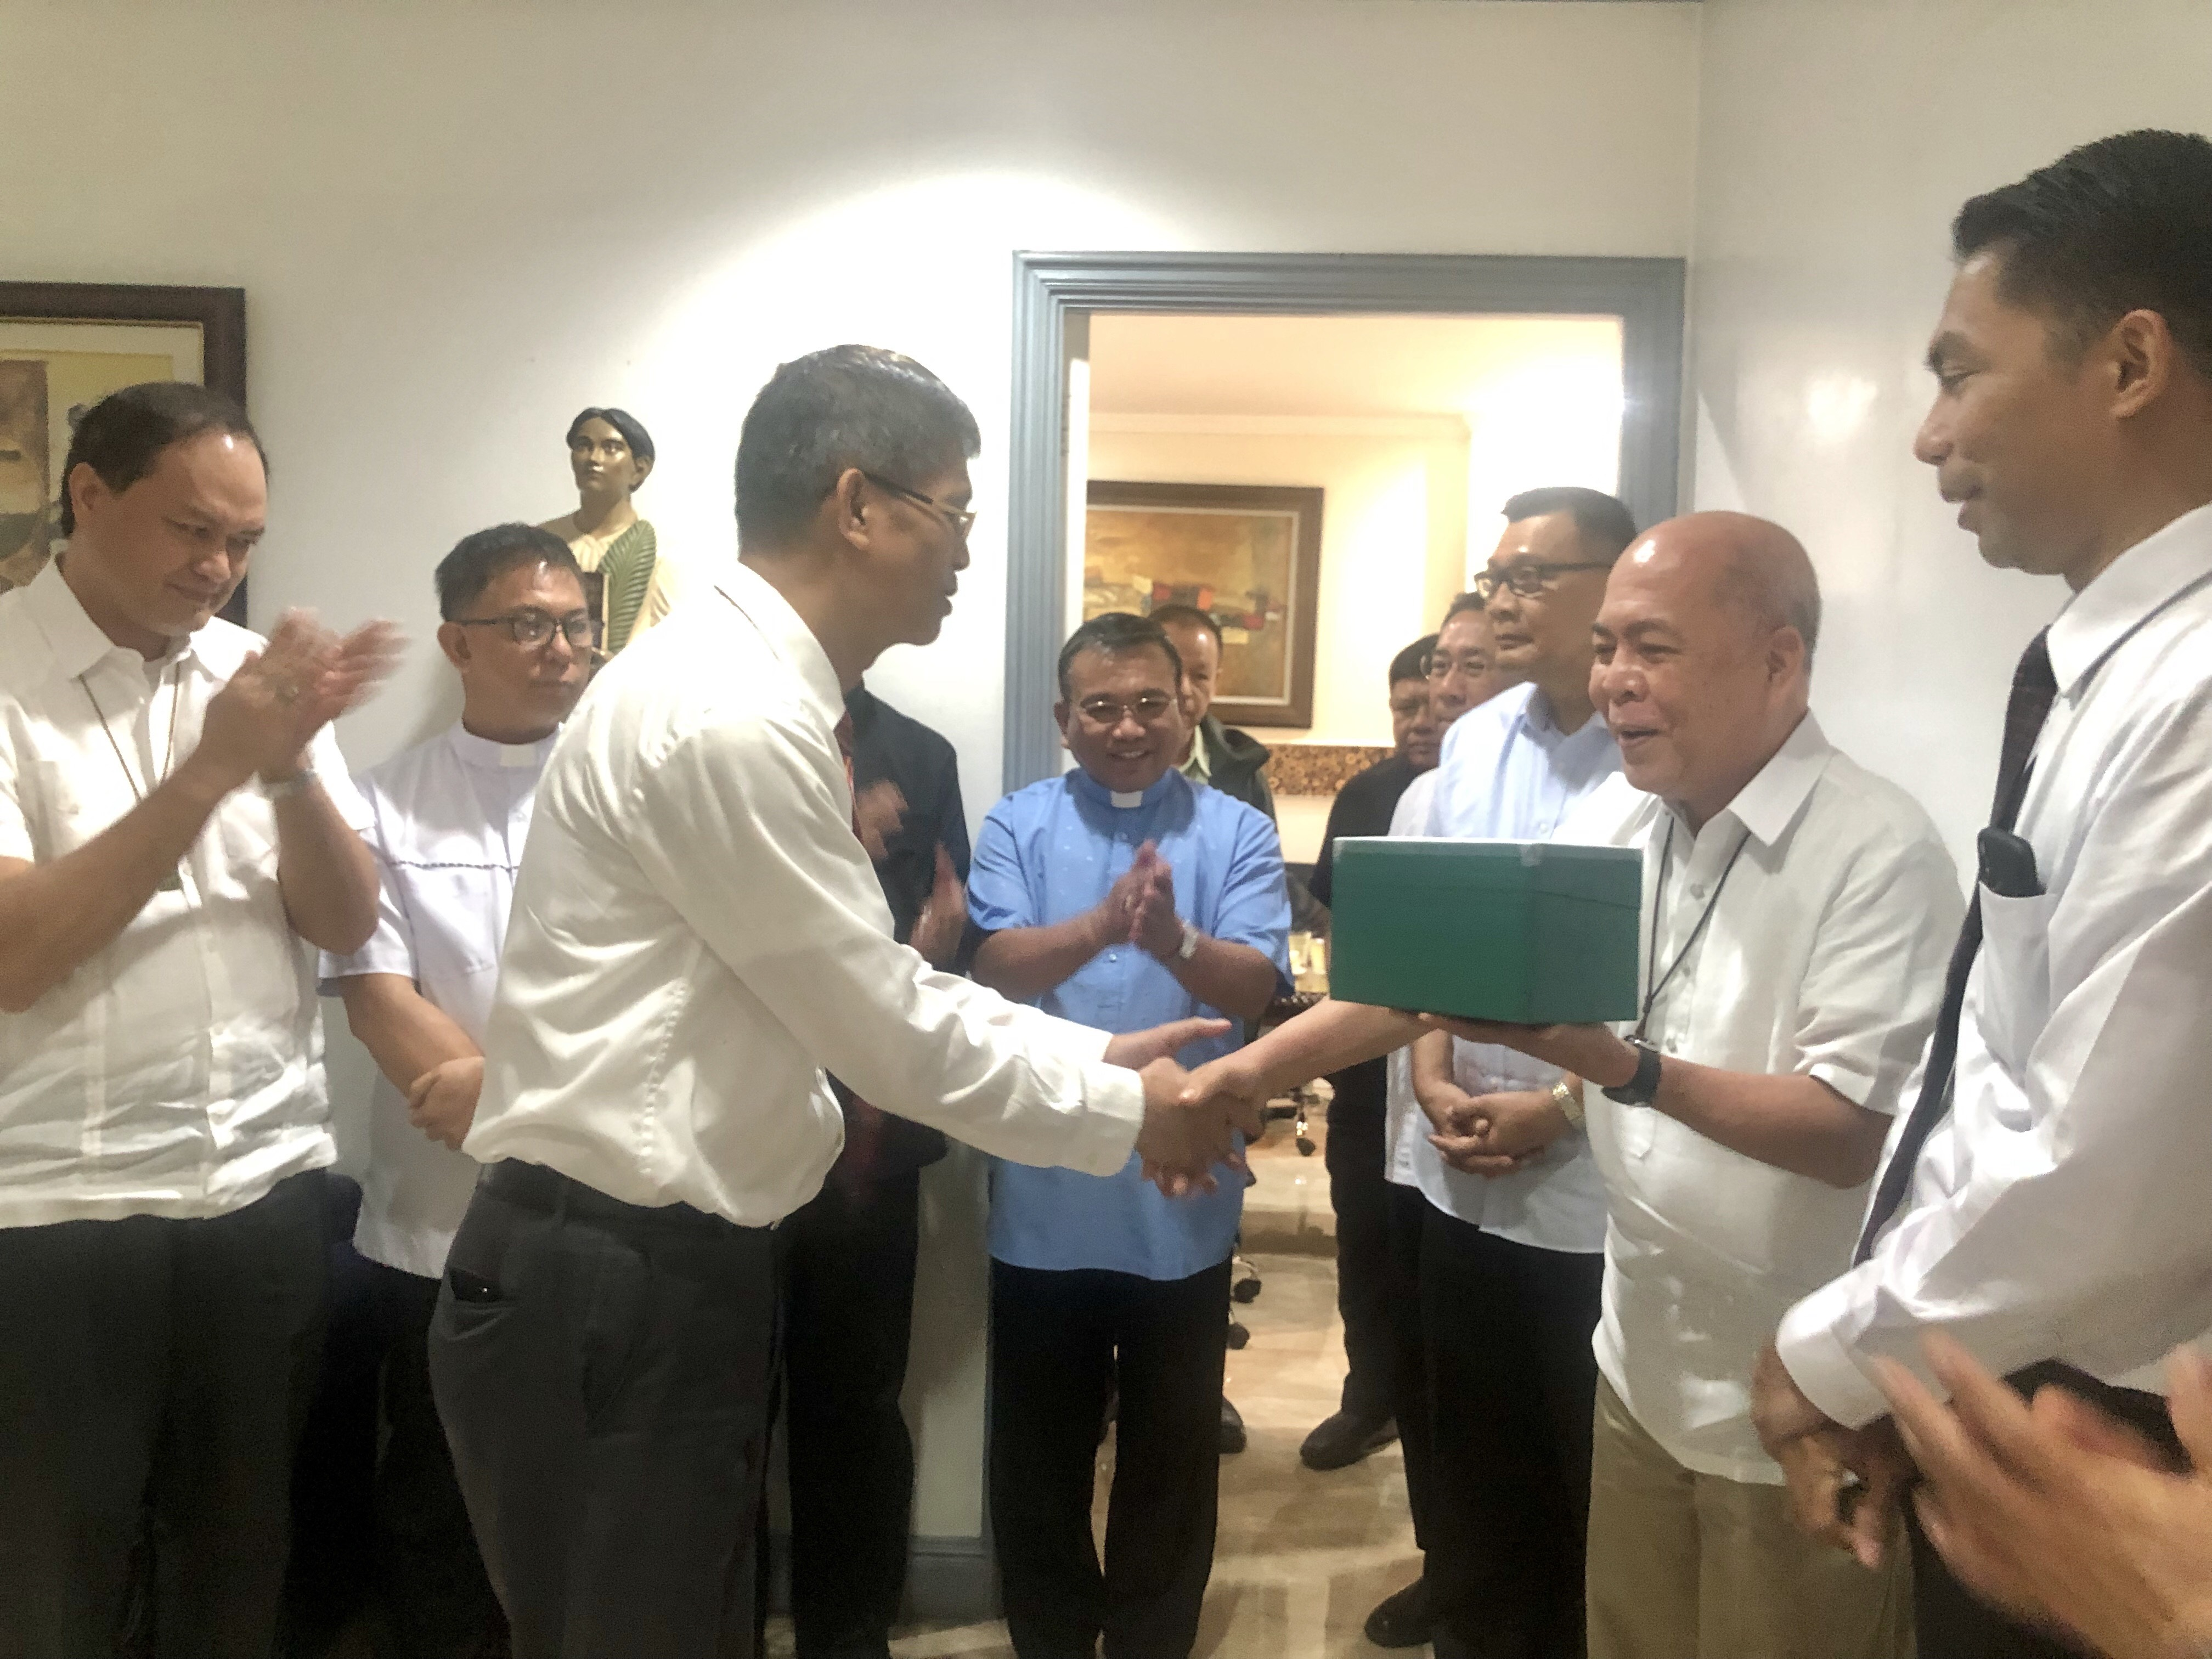 Elder Aretemio Maligon, Area Seventy, shakes the hand of Archbishop Romulo Valles, Catholic Bishops' Conference of the Philippines president during the handover of the digitized records on Sept. 18 at the Catholic Bishops' Conference of the Philippines' headquarters.